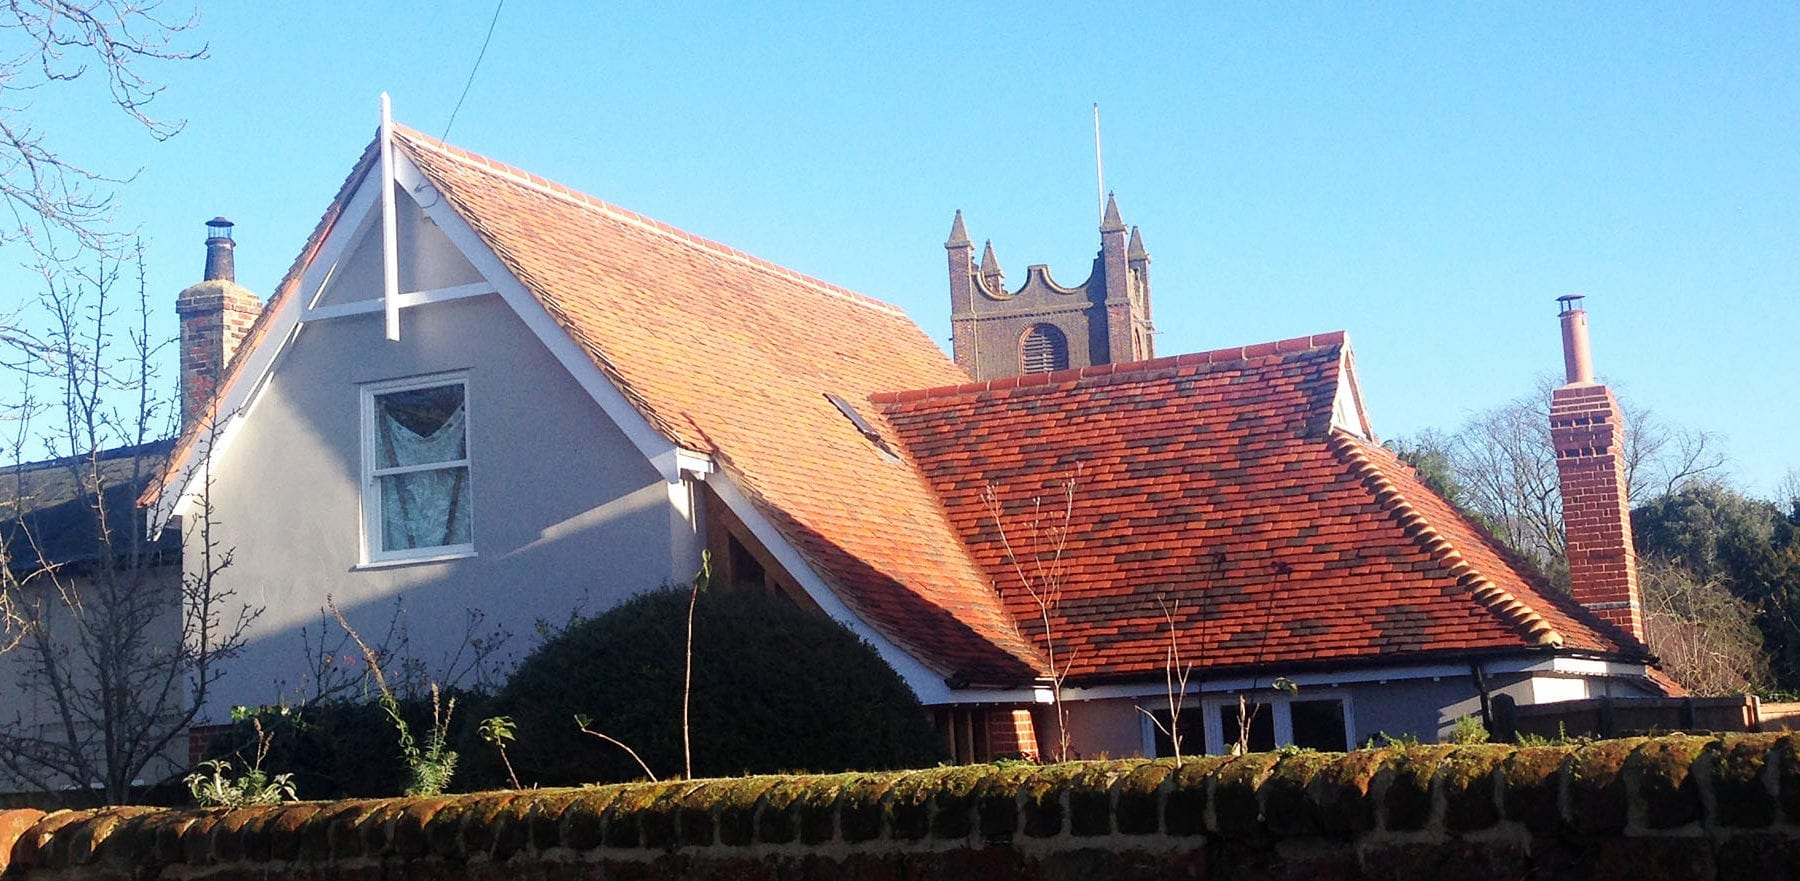 Lifestiles - Handcrafted Tilehurst Clay Roof Tiles - Toppesfield, England